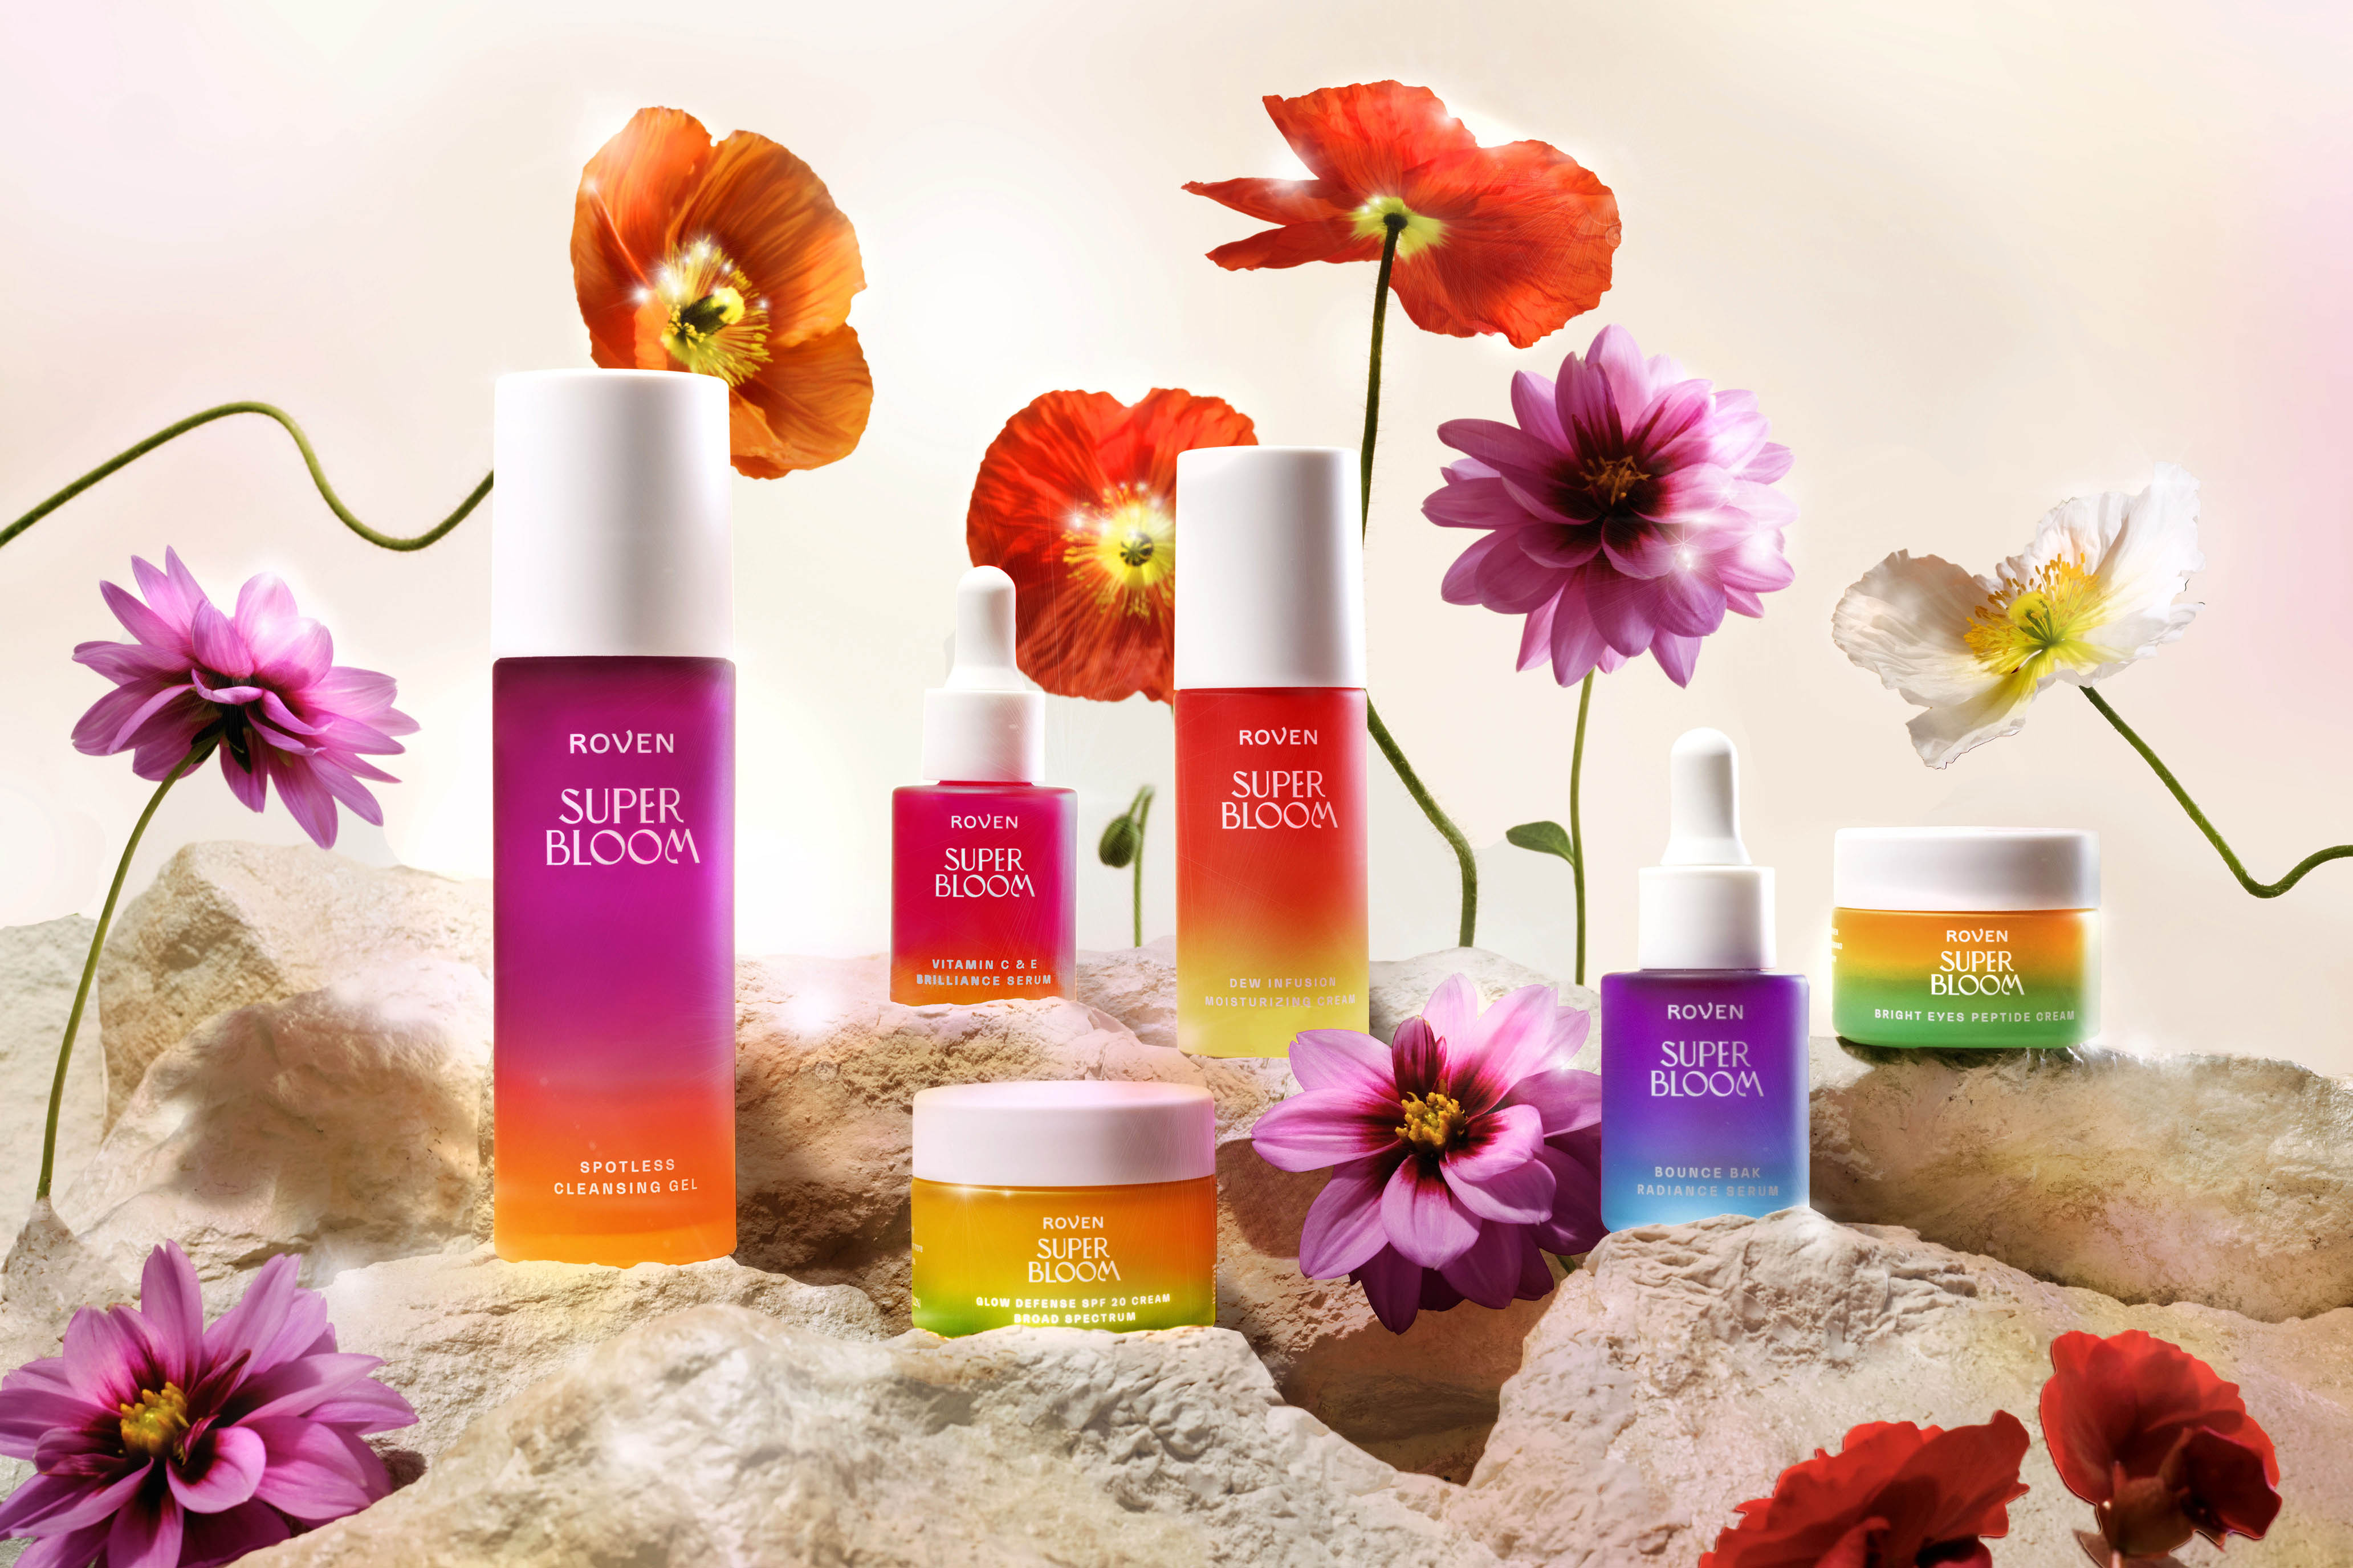 Grove Collaborative SuperBloom Skin Care Brand Identity and Packaging Design by Hatch Design